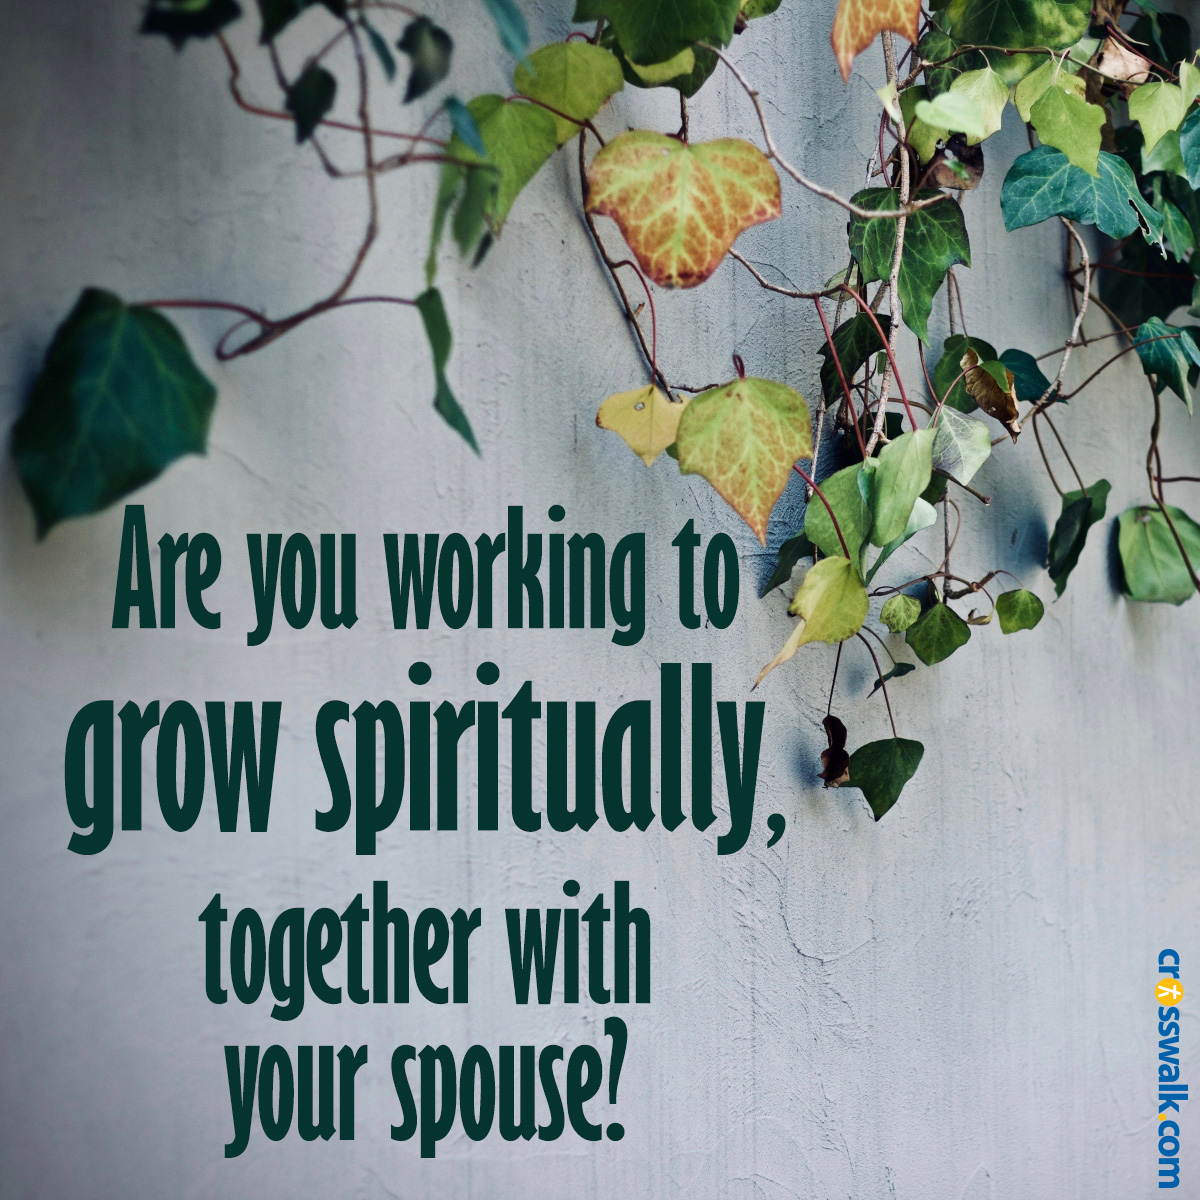 grow spiritually with your spouse